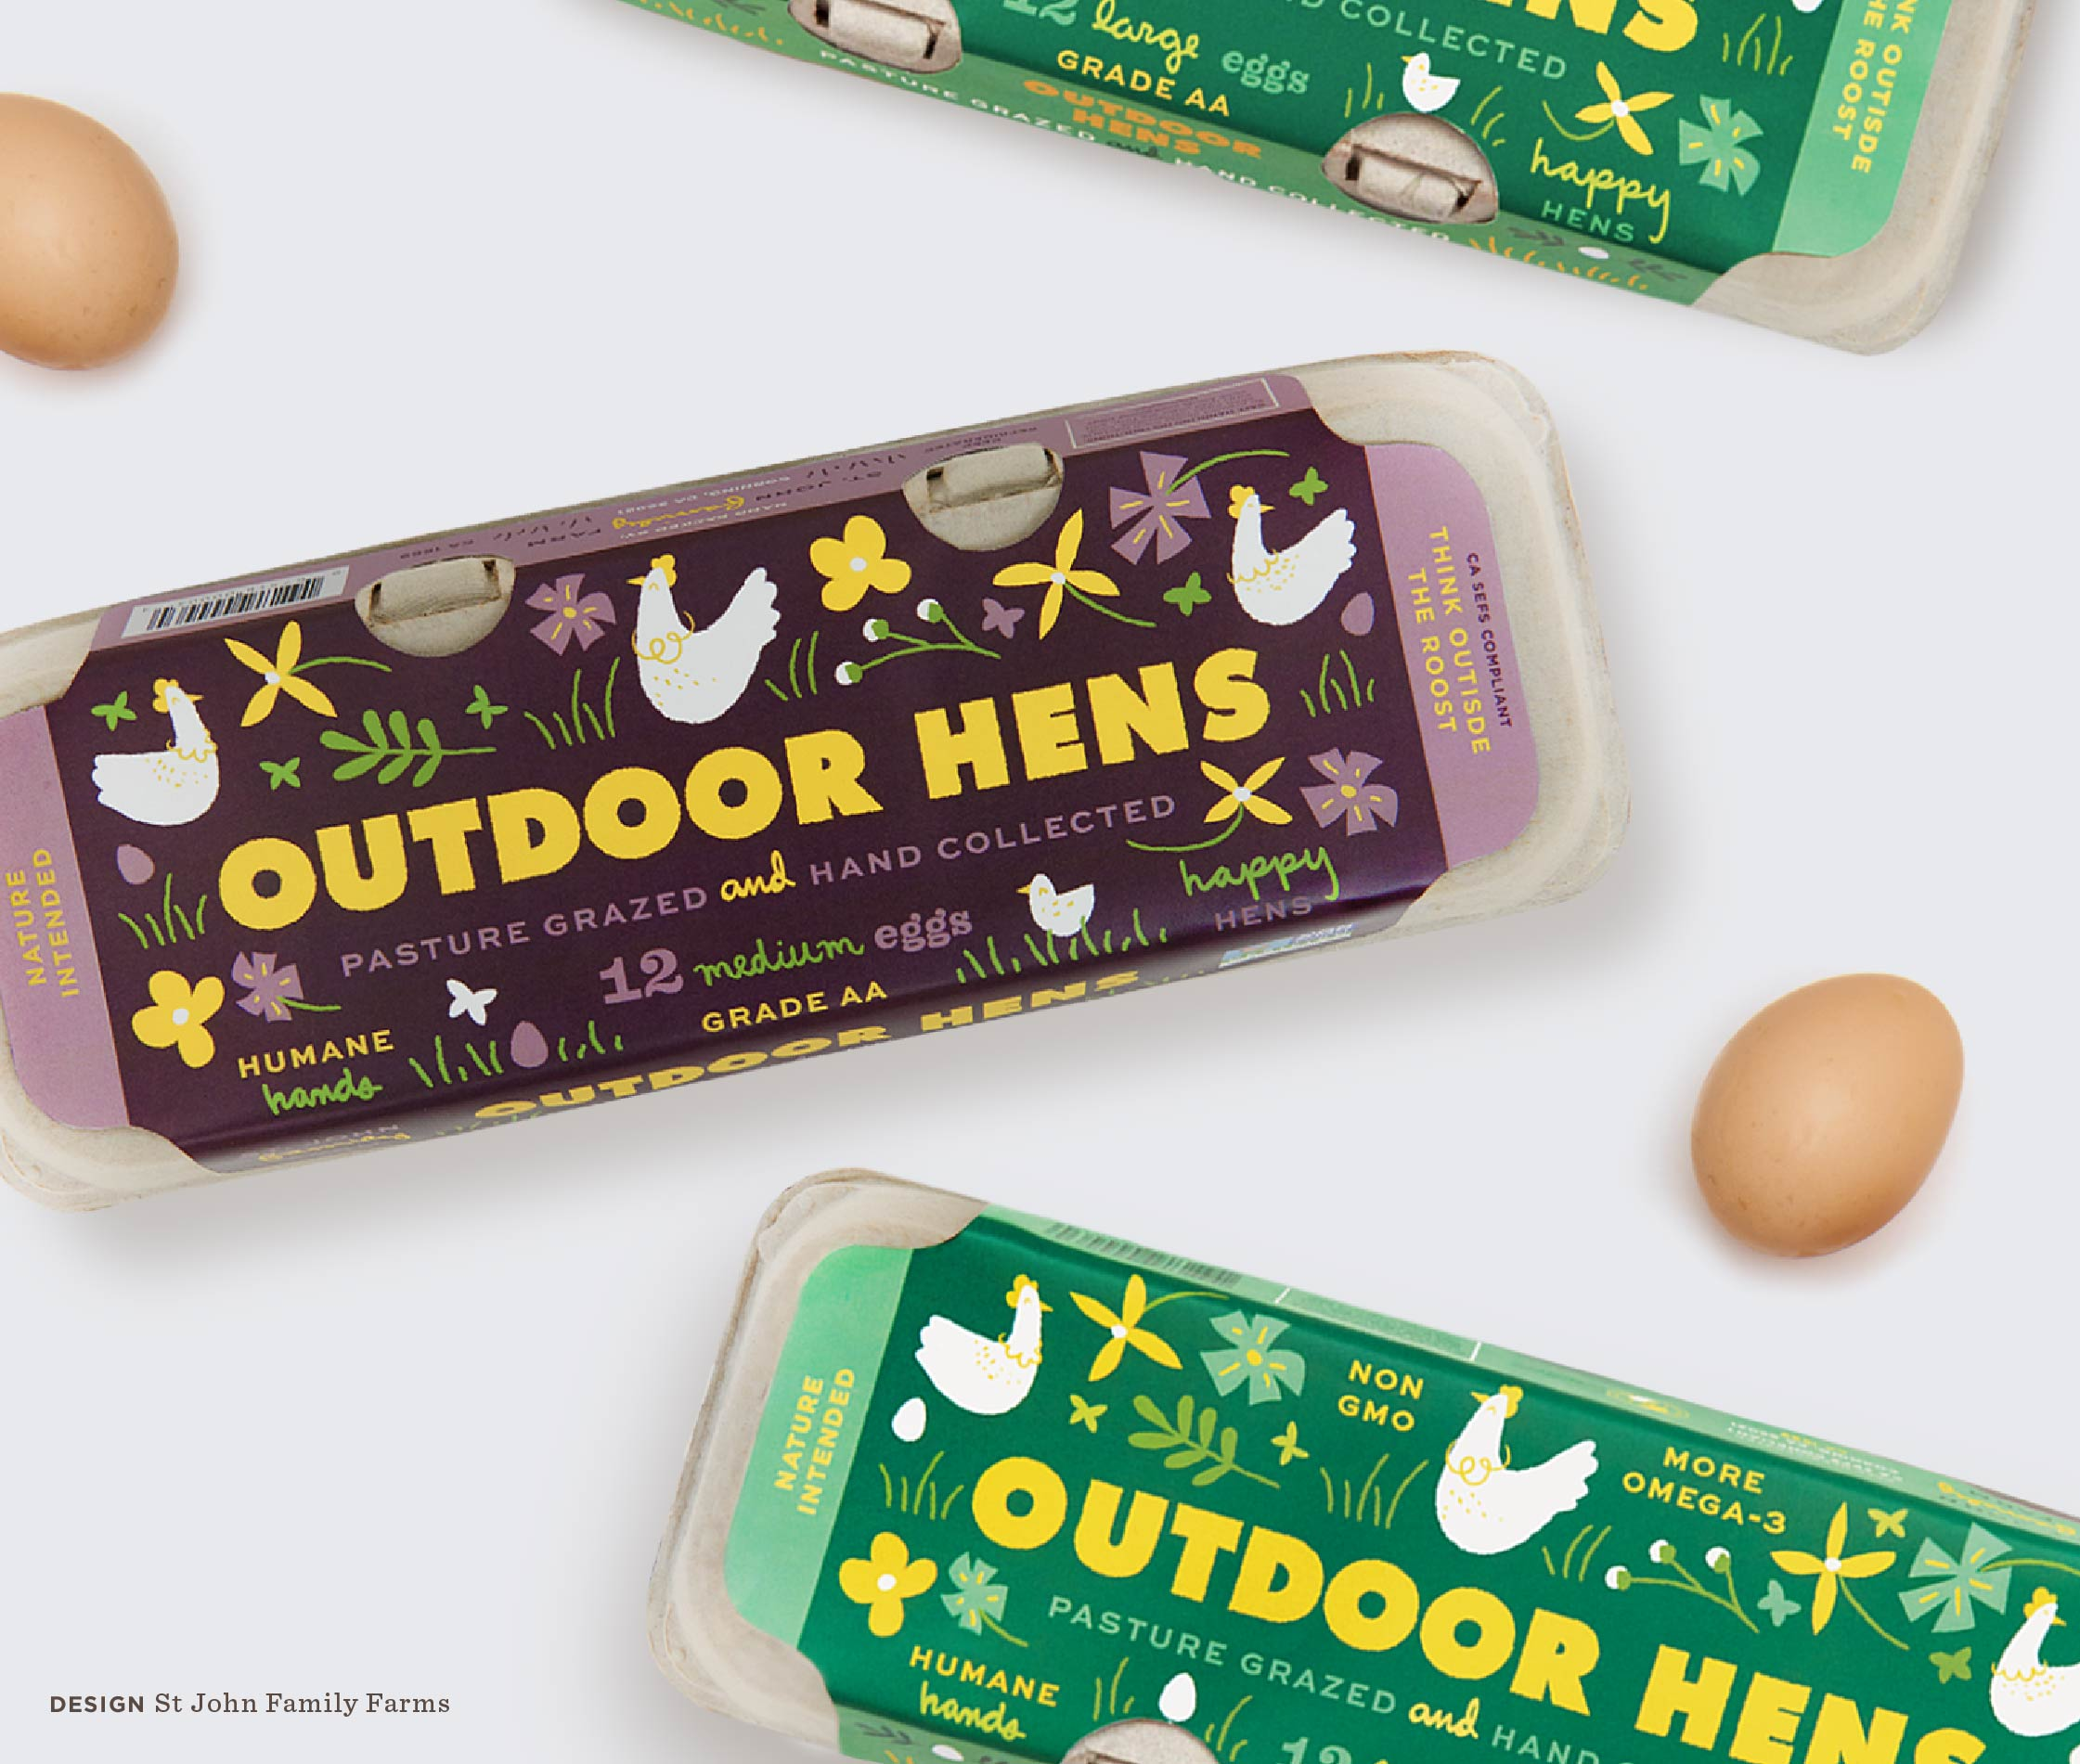 Large Egg Carton Packaging with illustration for St John Family Farm's Outdoor Hens